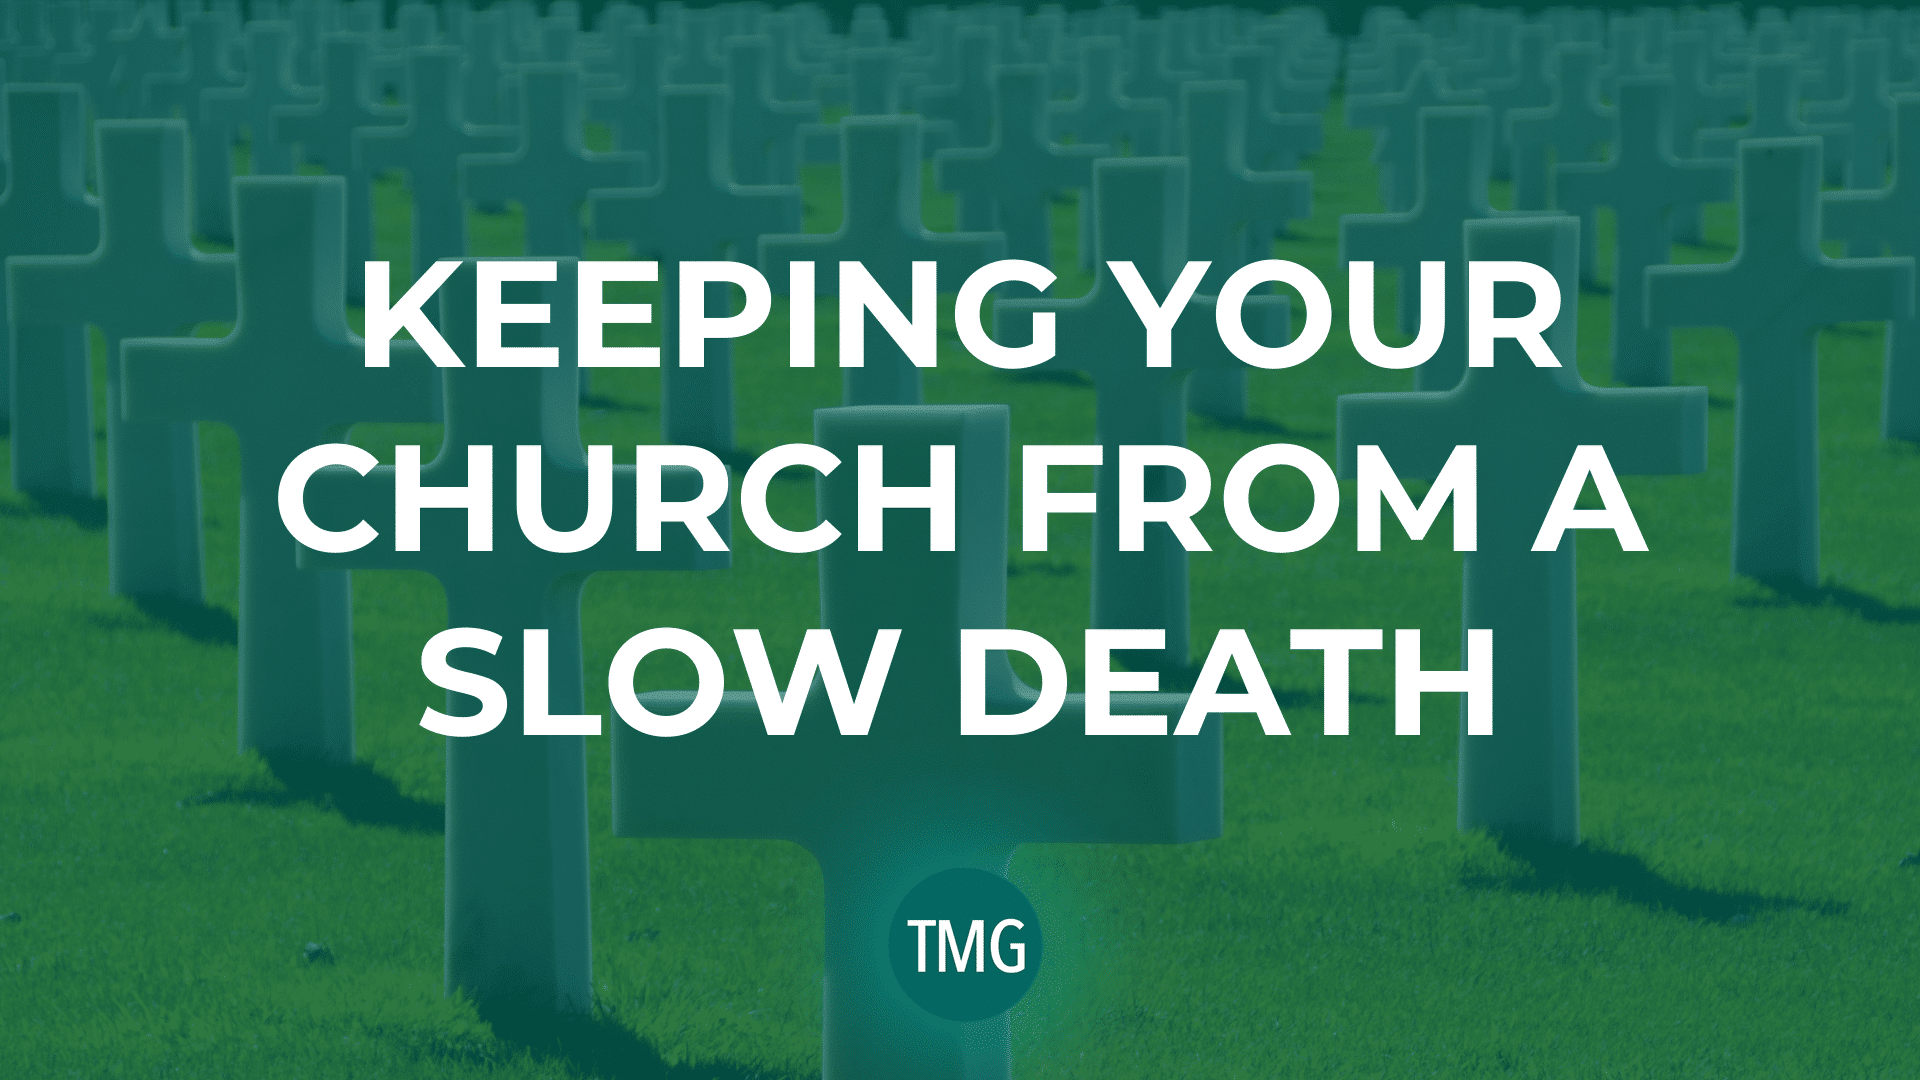 keeping-your-church-from-a-slow-death-header-image